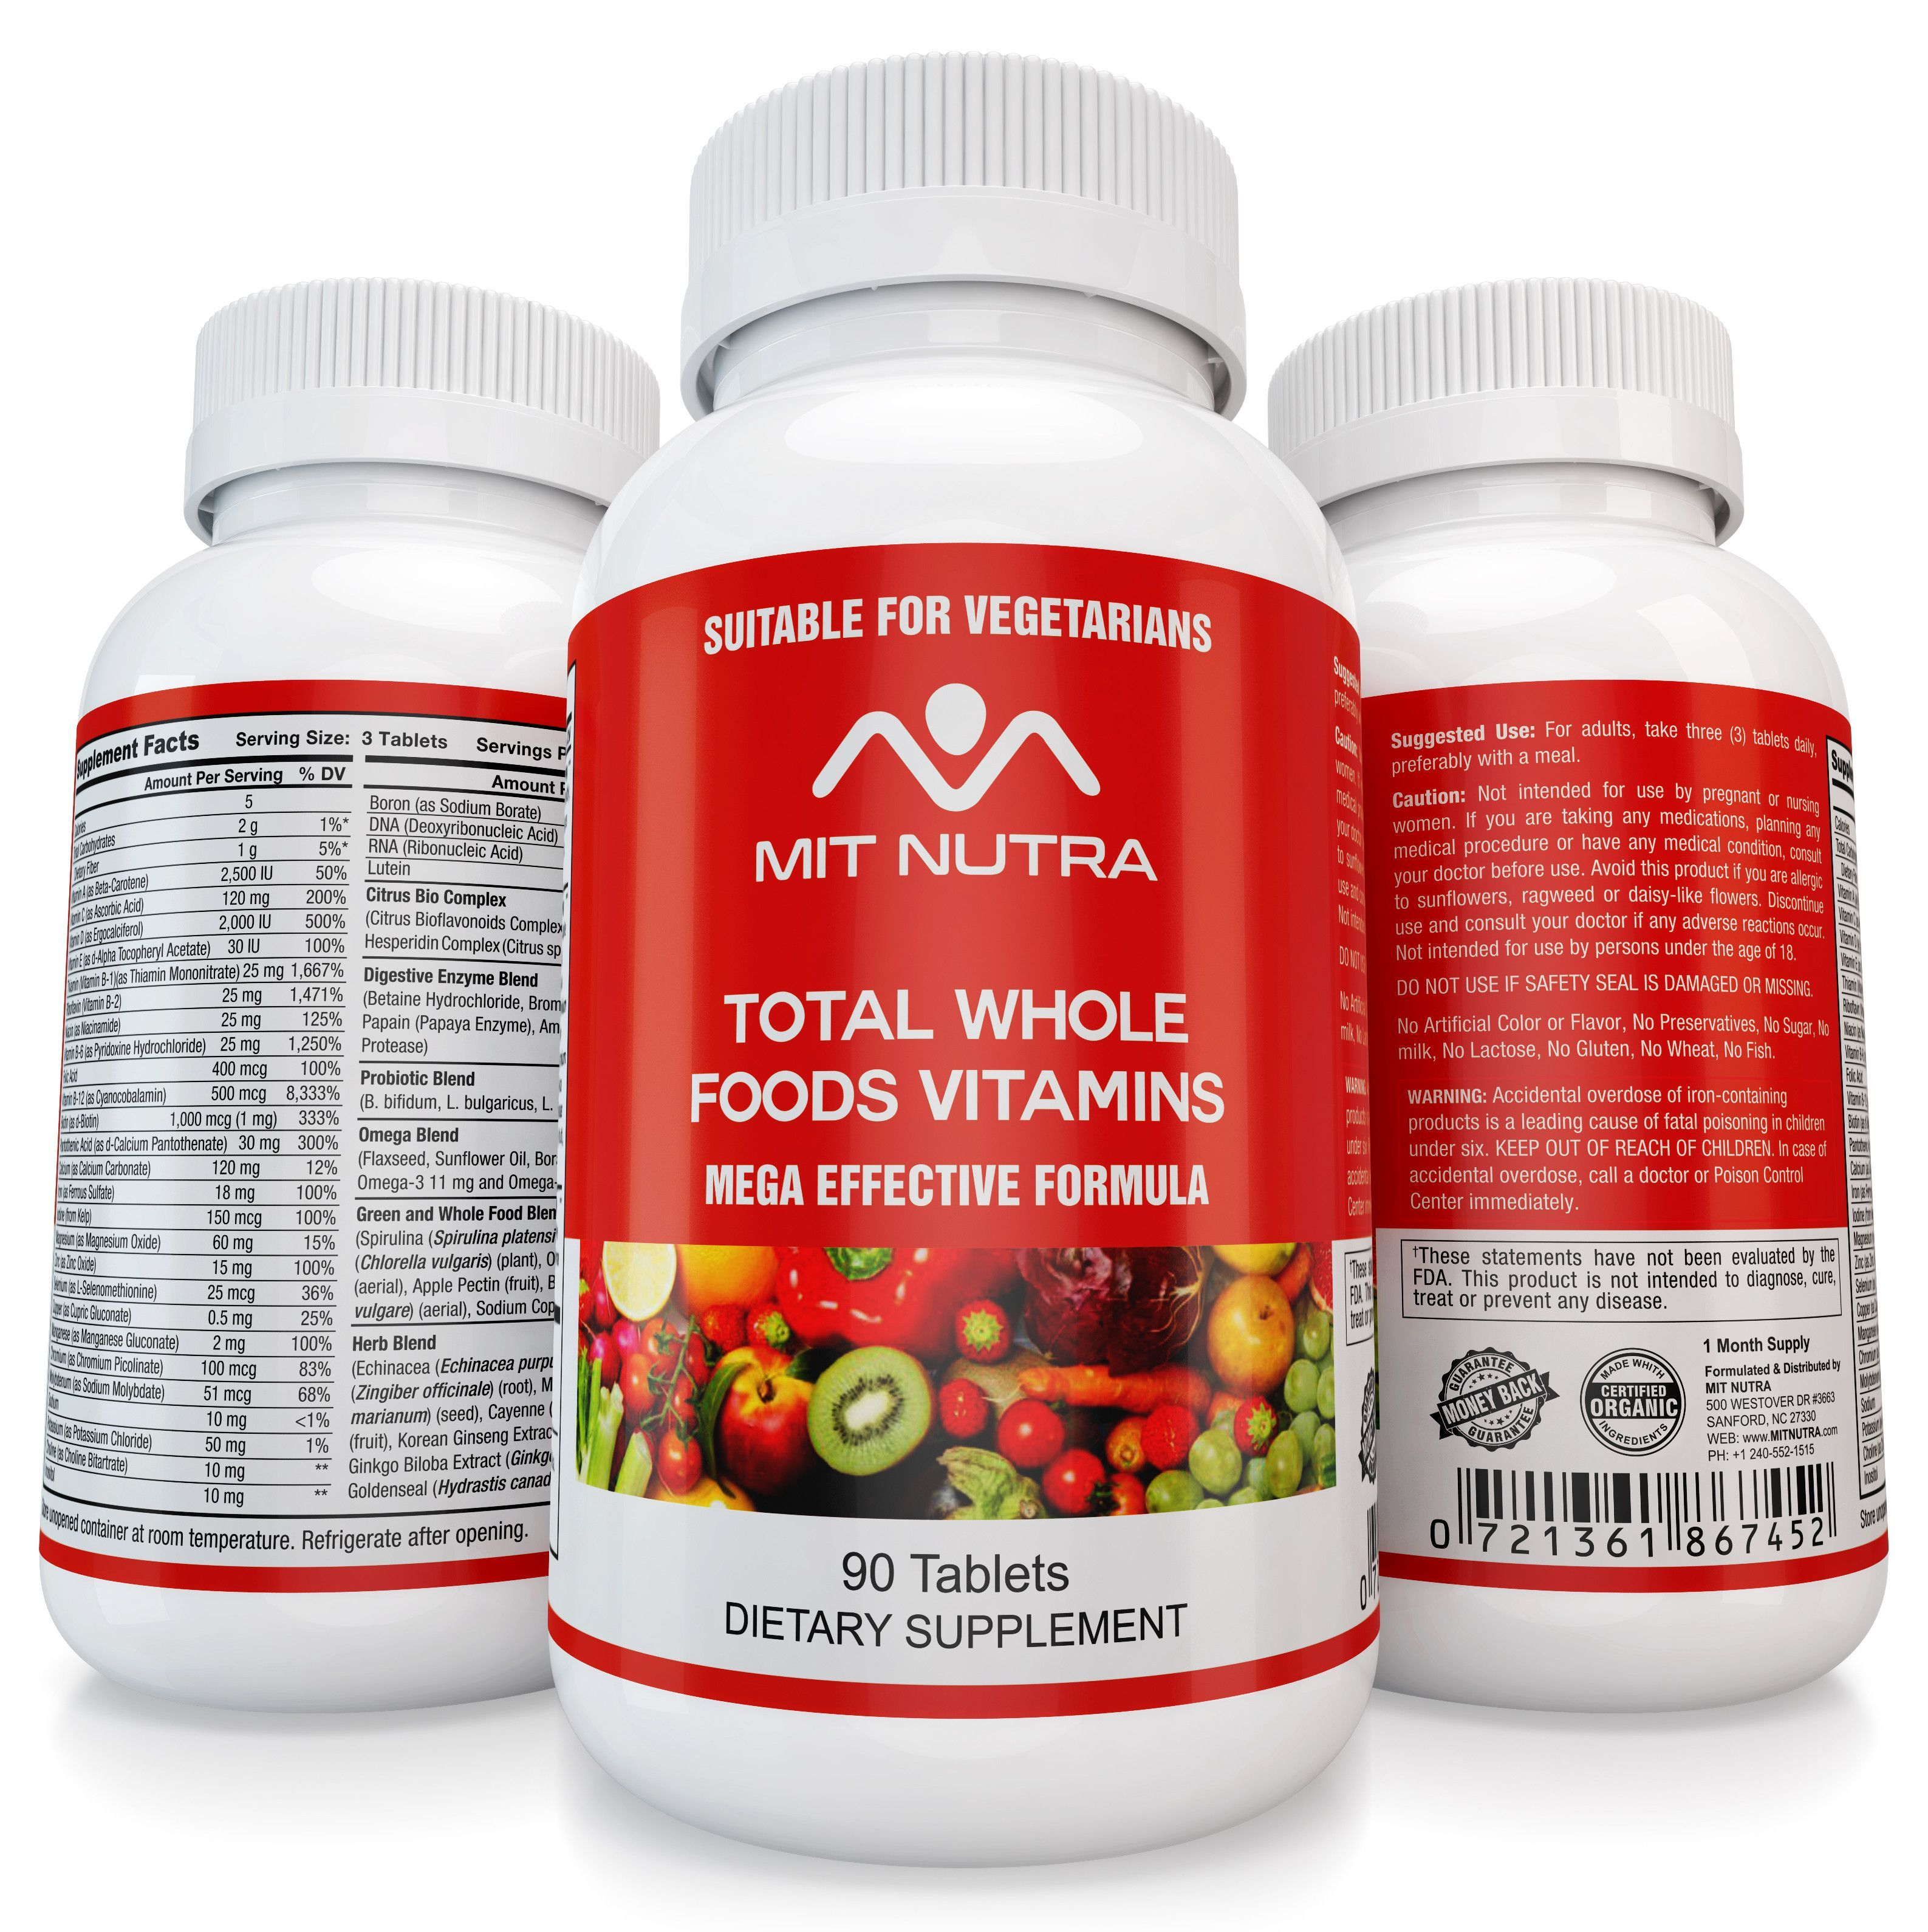 Total Whole Foods Vitamins